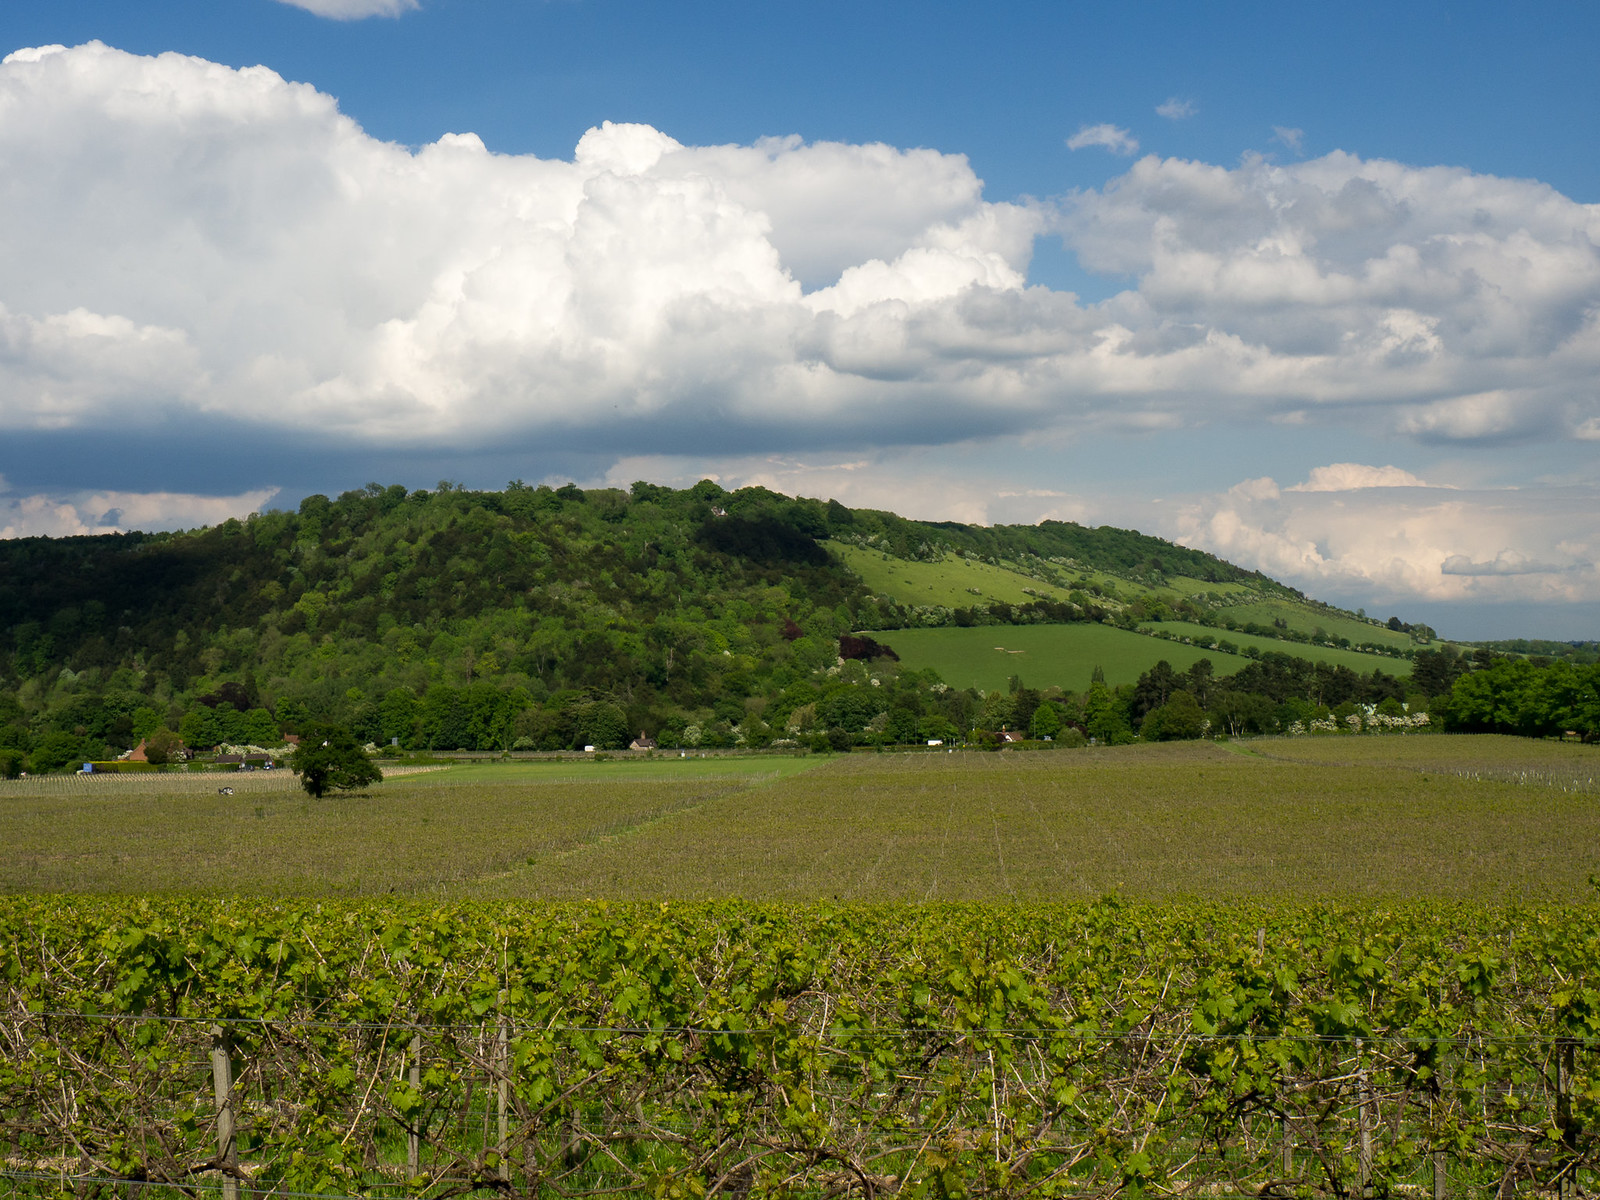 "Denbies Wine Estate We walked the Mole Gap Trail from Leatherhead to Dorking, with a detour for Box Hill. www.visitdorking.com/explore/walks-and-trails/mole-gap-trail/"" rel=""nofollow www.visitdorking.com/explore/walks-and-trails/mole-gap-tr... www.walkingclub.org.uk/book_1/walk_49/"" rel=""nofollow www.walkingclub.org.uk/book_1/walk_49/"